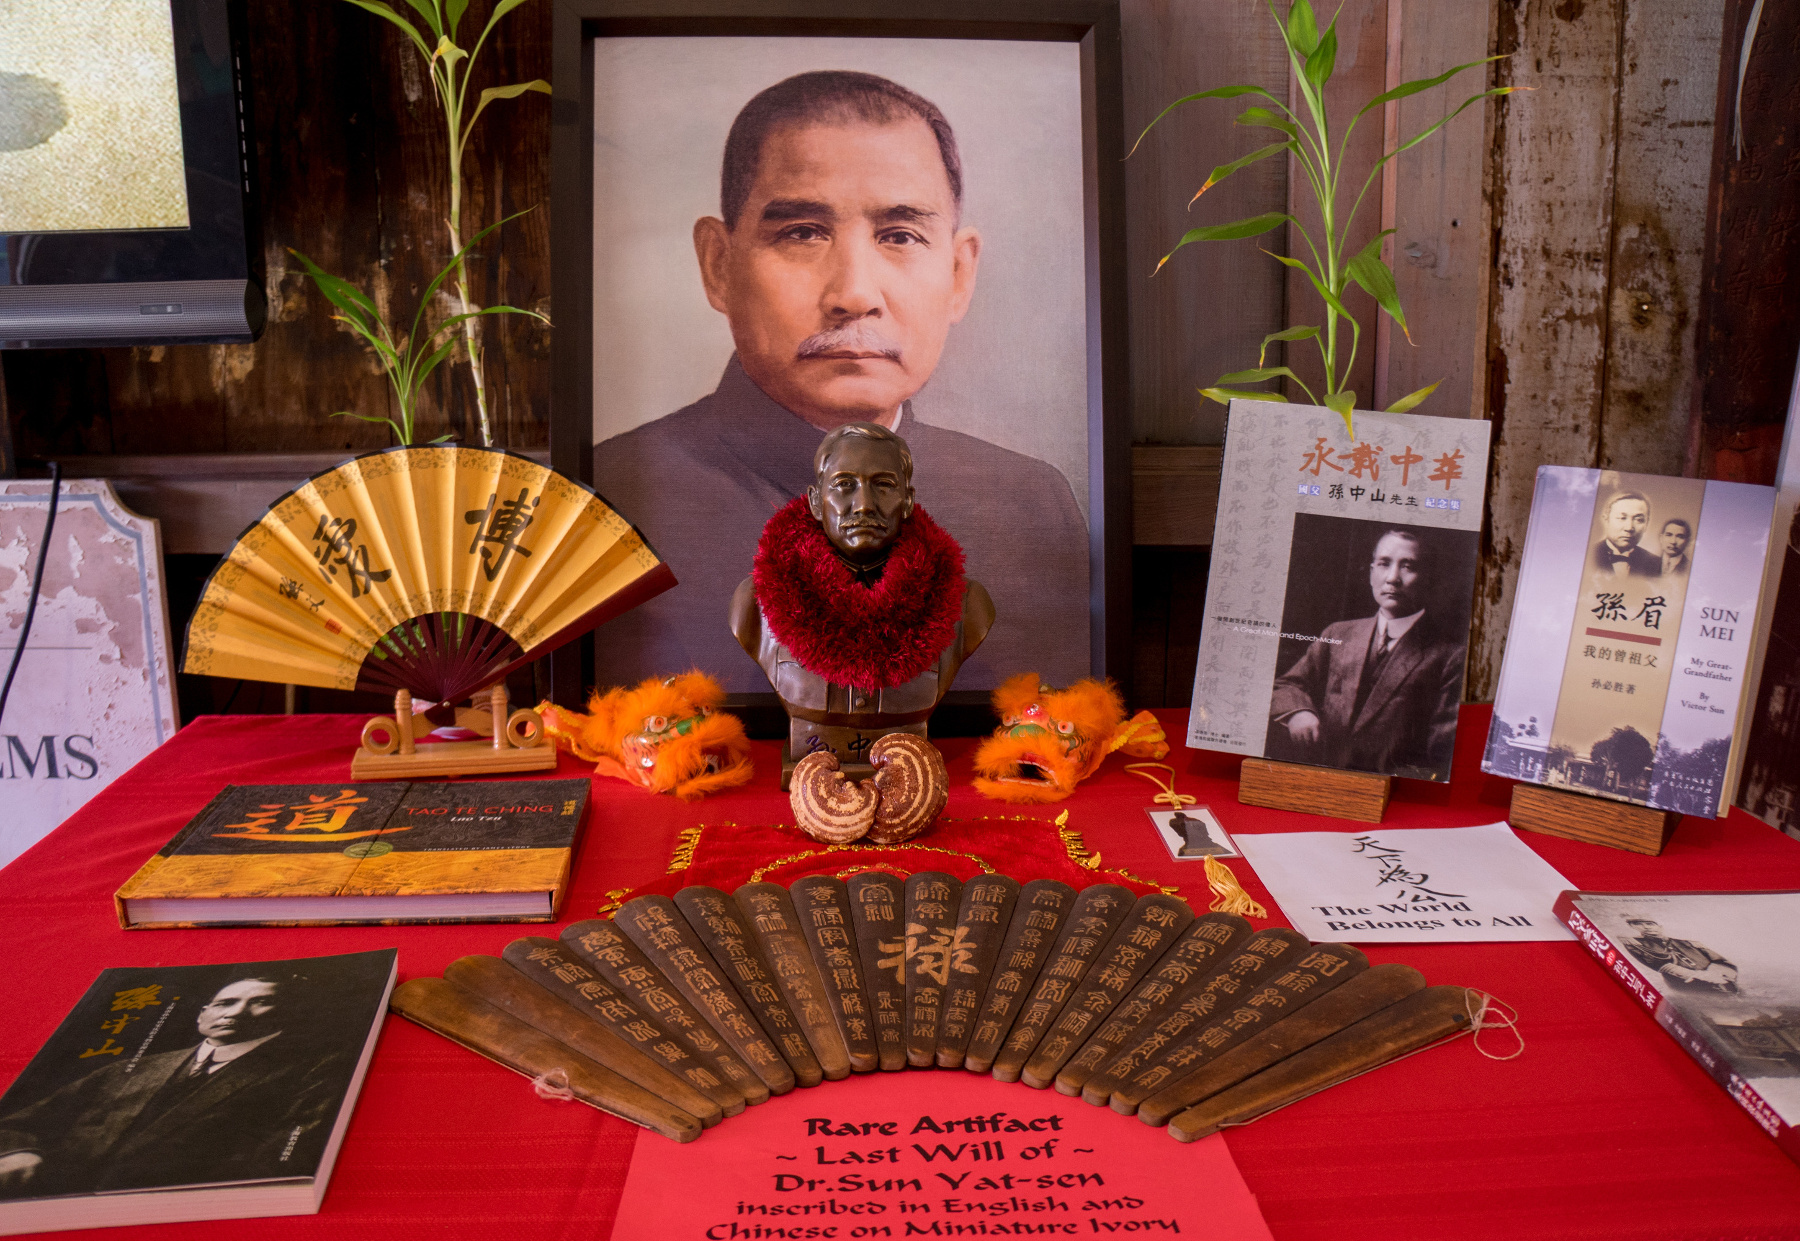 Sun Yat Sen tribute display at Wo Hing Museum & Cookhouse. File photo 2015 credit: Melanie Agrabante